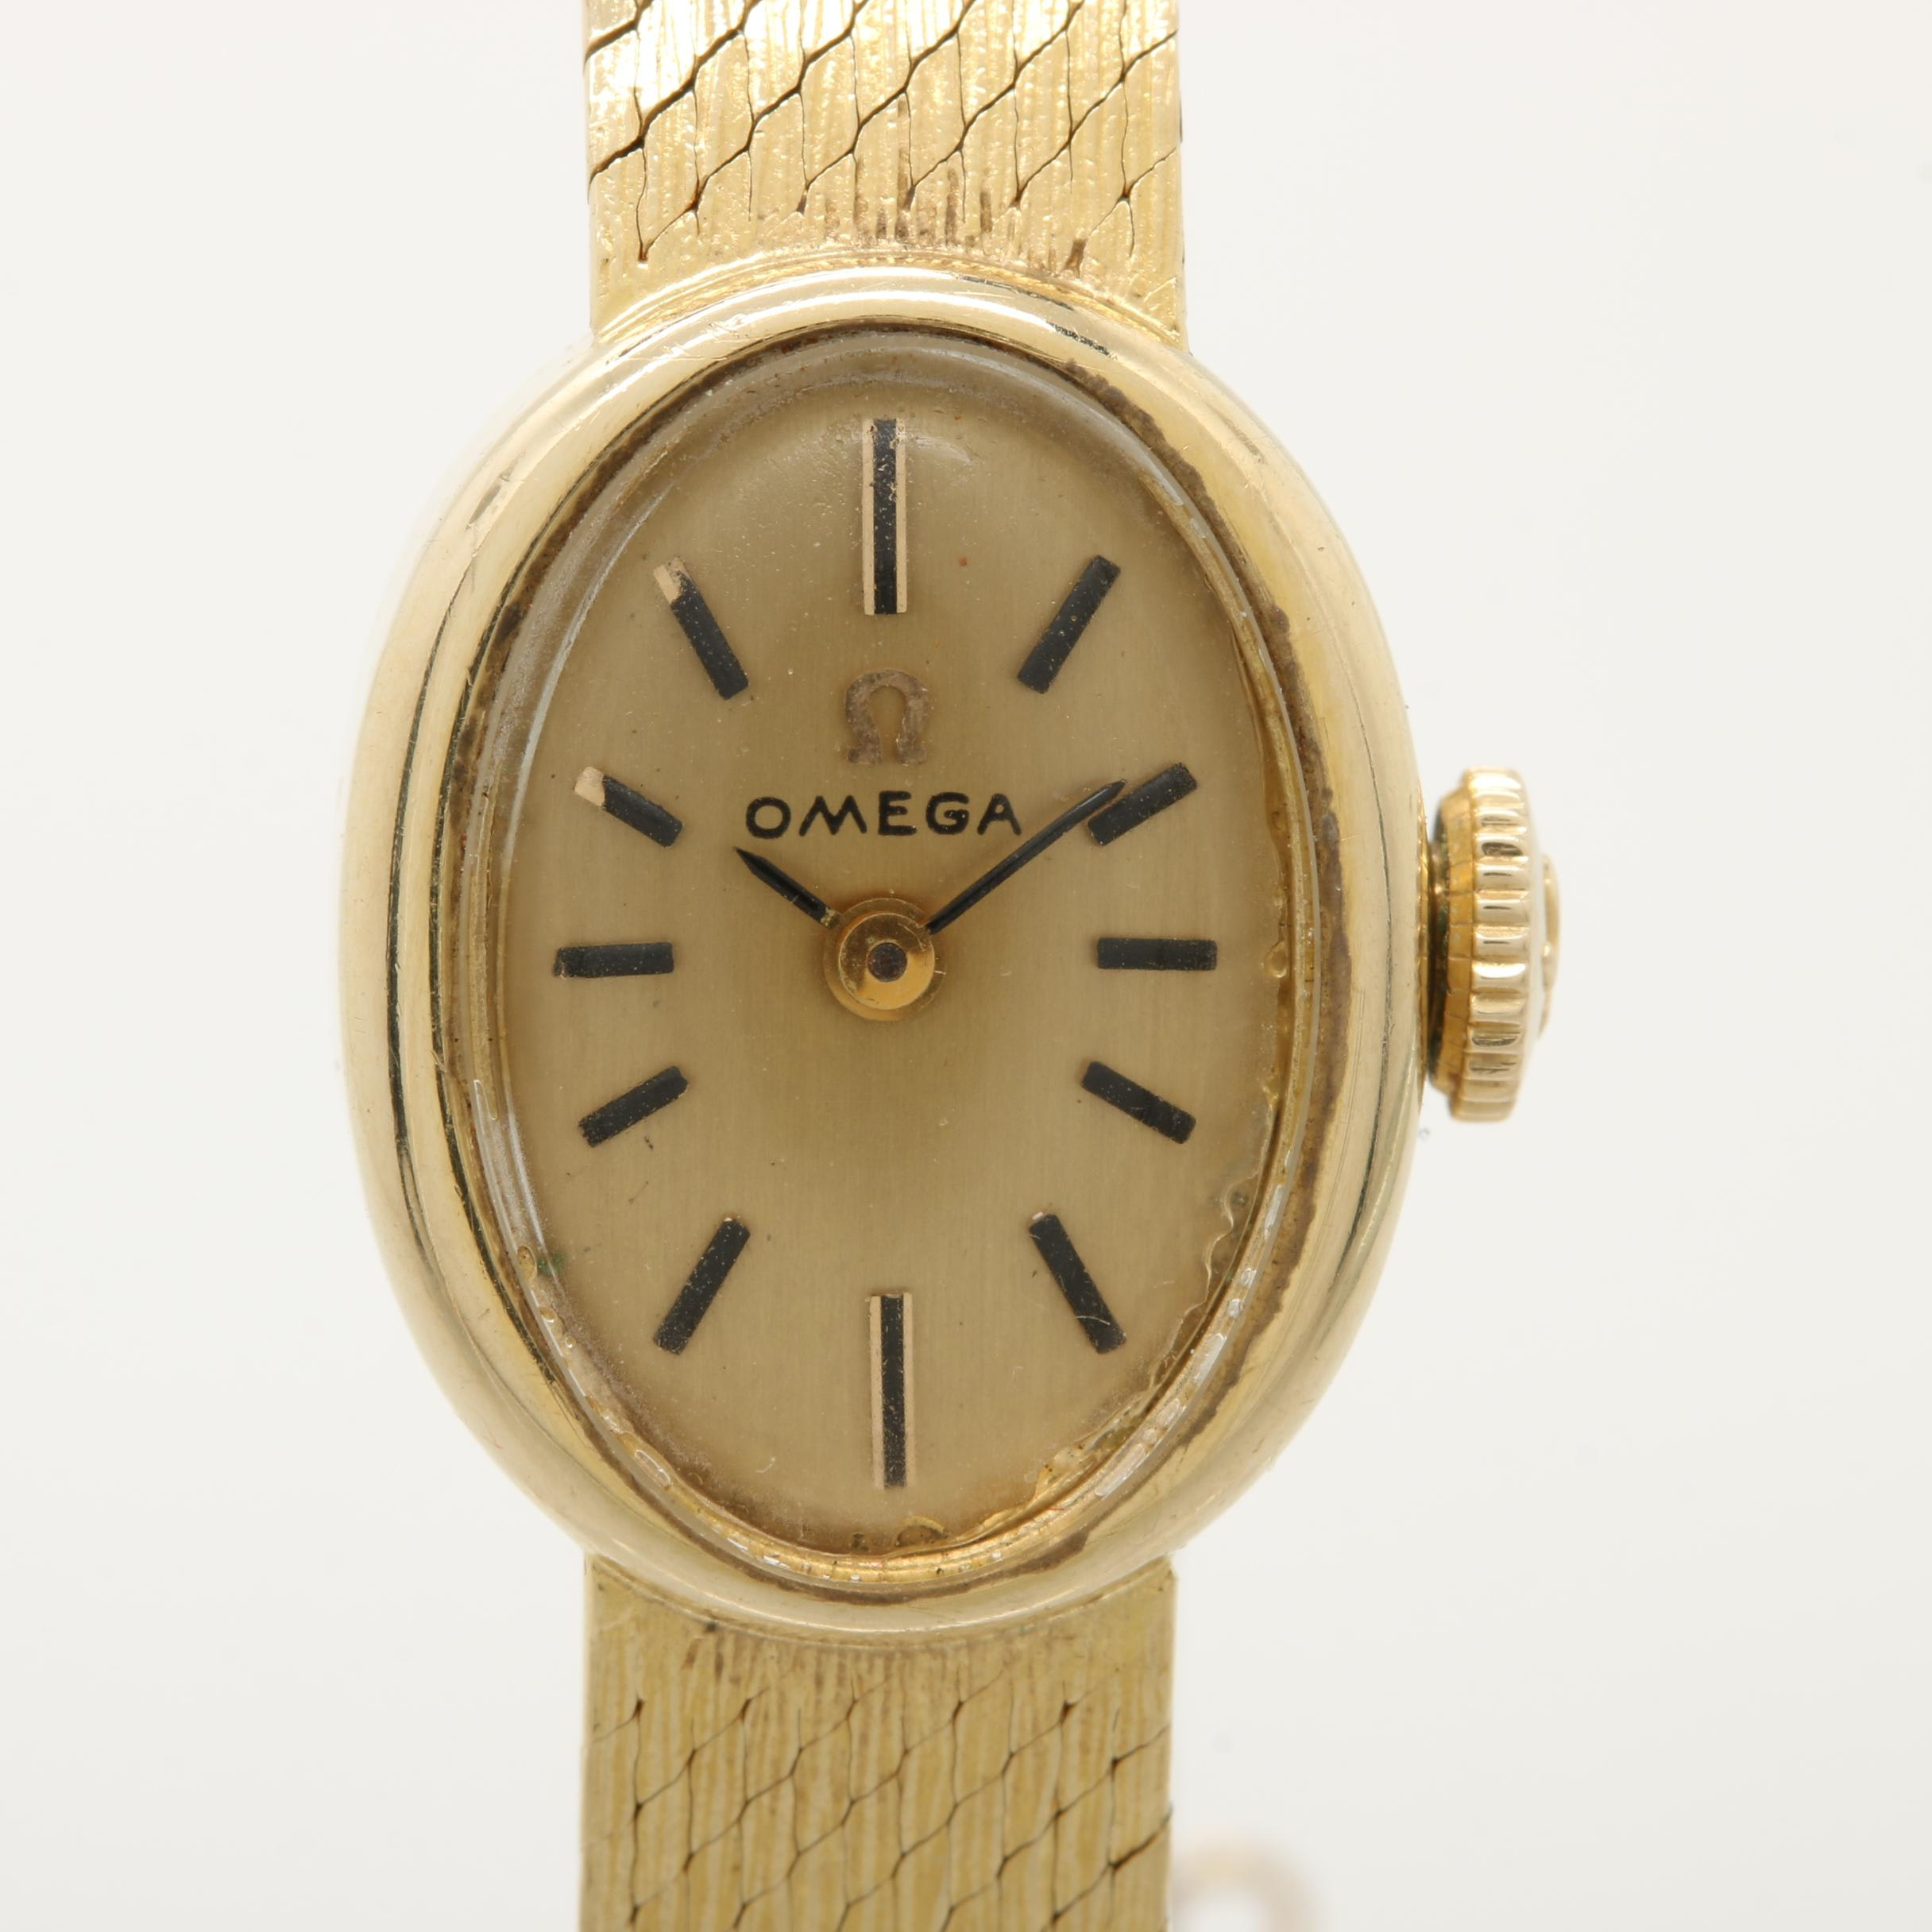 Omega 14K Yellow Gold Stem Wind Wristwatch